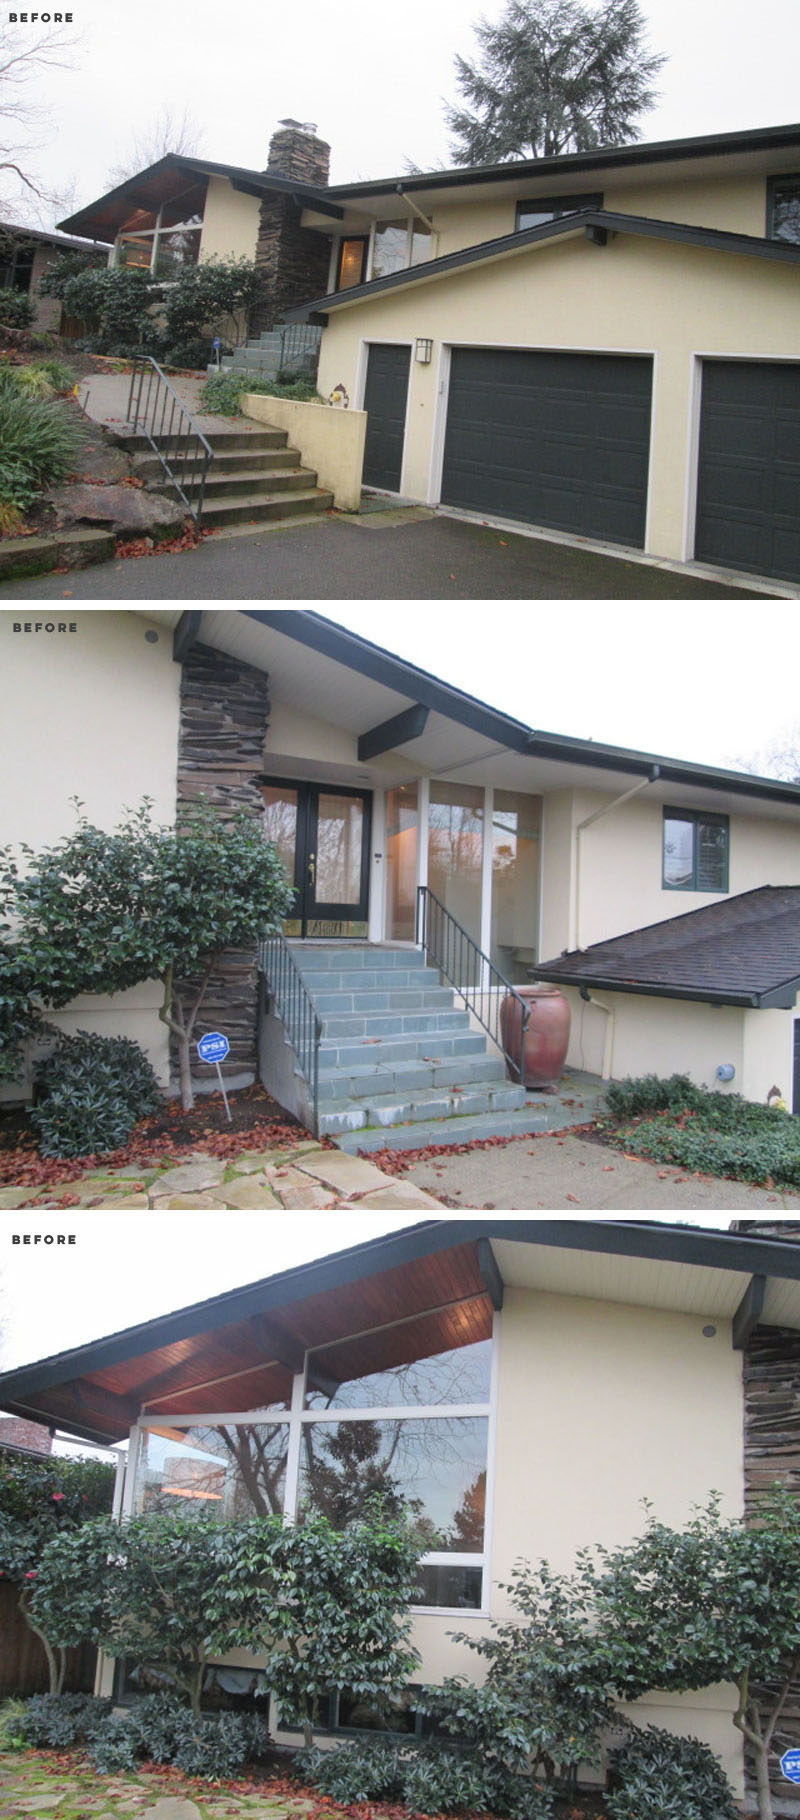 BEFORE PHOTO - Before the revitalization, the house was the recipient of many changes over the years. This is what the front of the house looked like before any work was done. Click through to see the after photos. #HouseRenovation